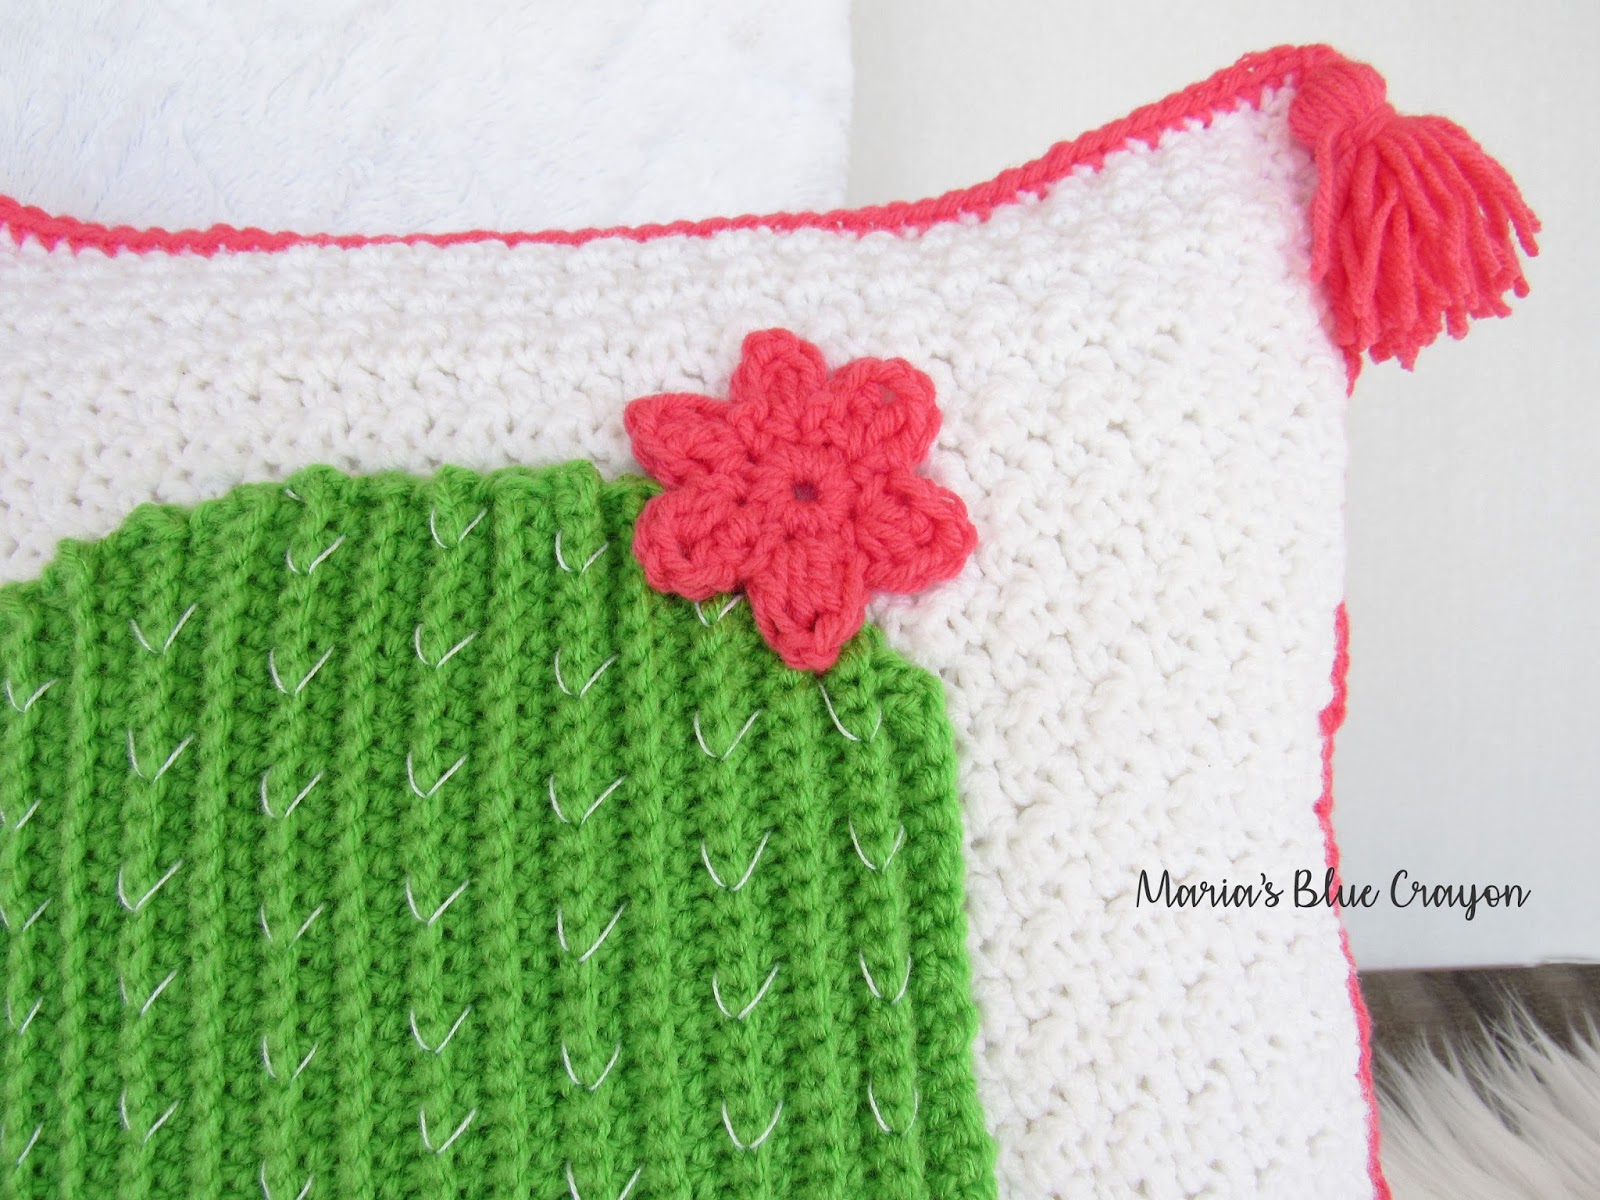 Free Cushion Cover Knitting Pattern Spring Blog Hop Festive Cactus Pillow Cover Free Crochet Pattern